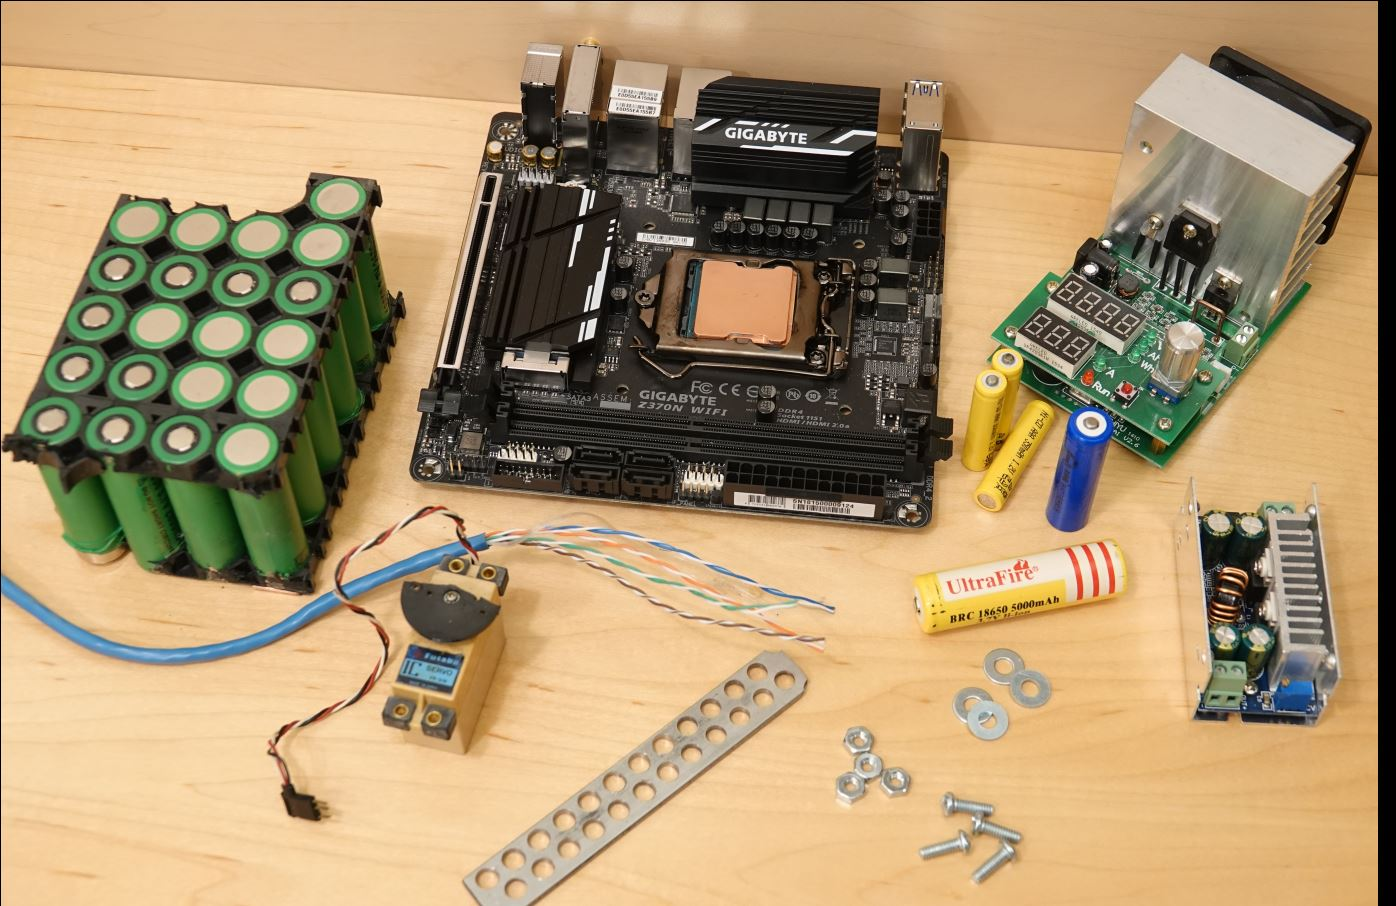 There are many different tools used to build robots.